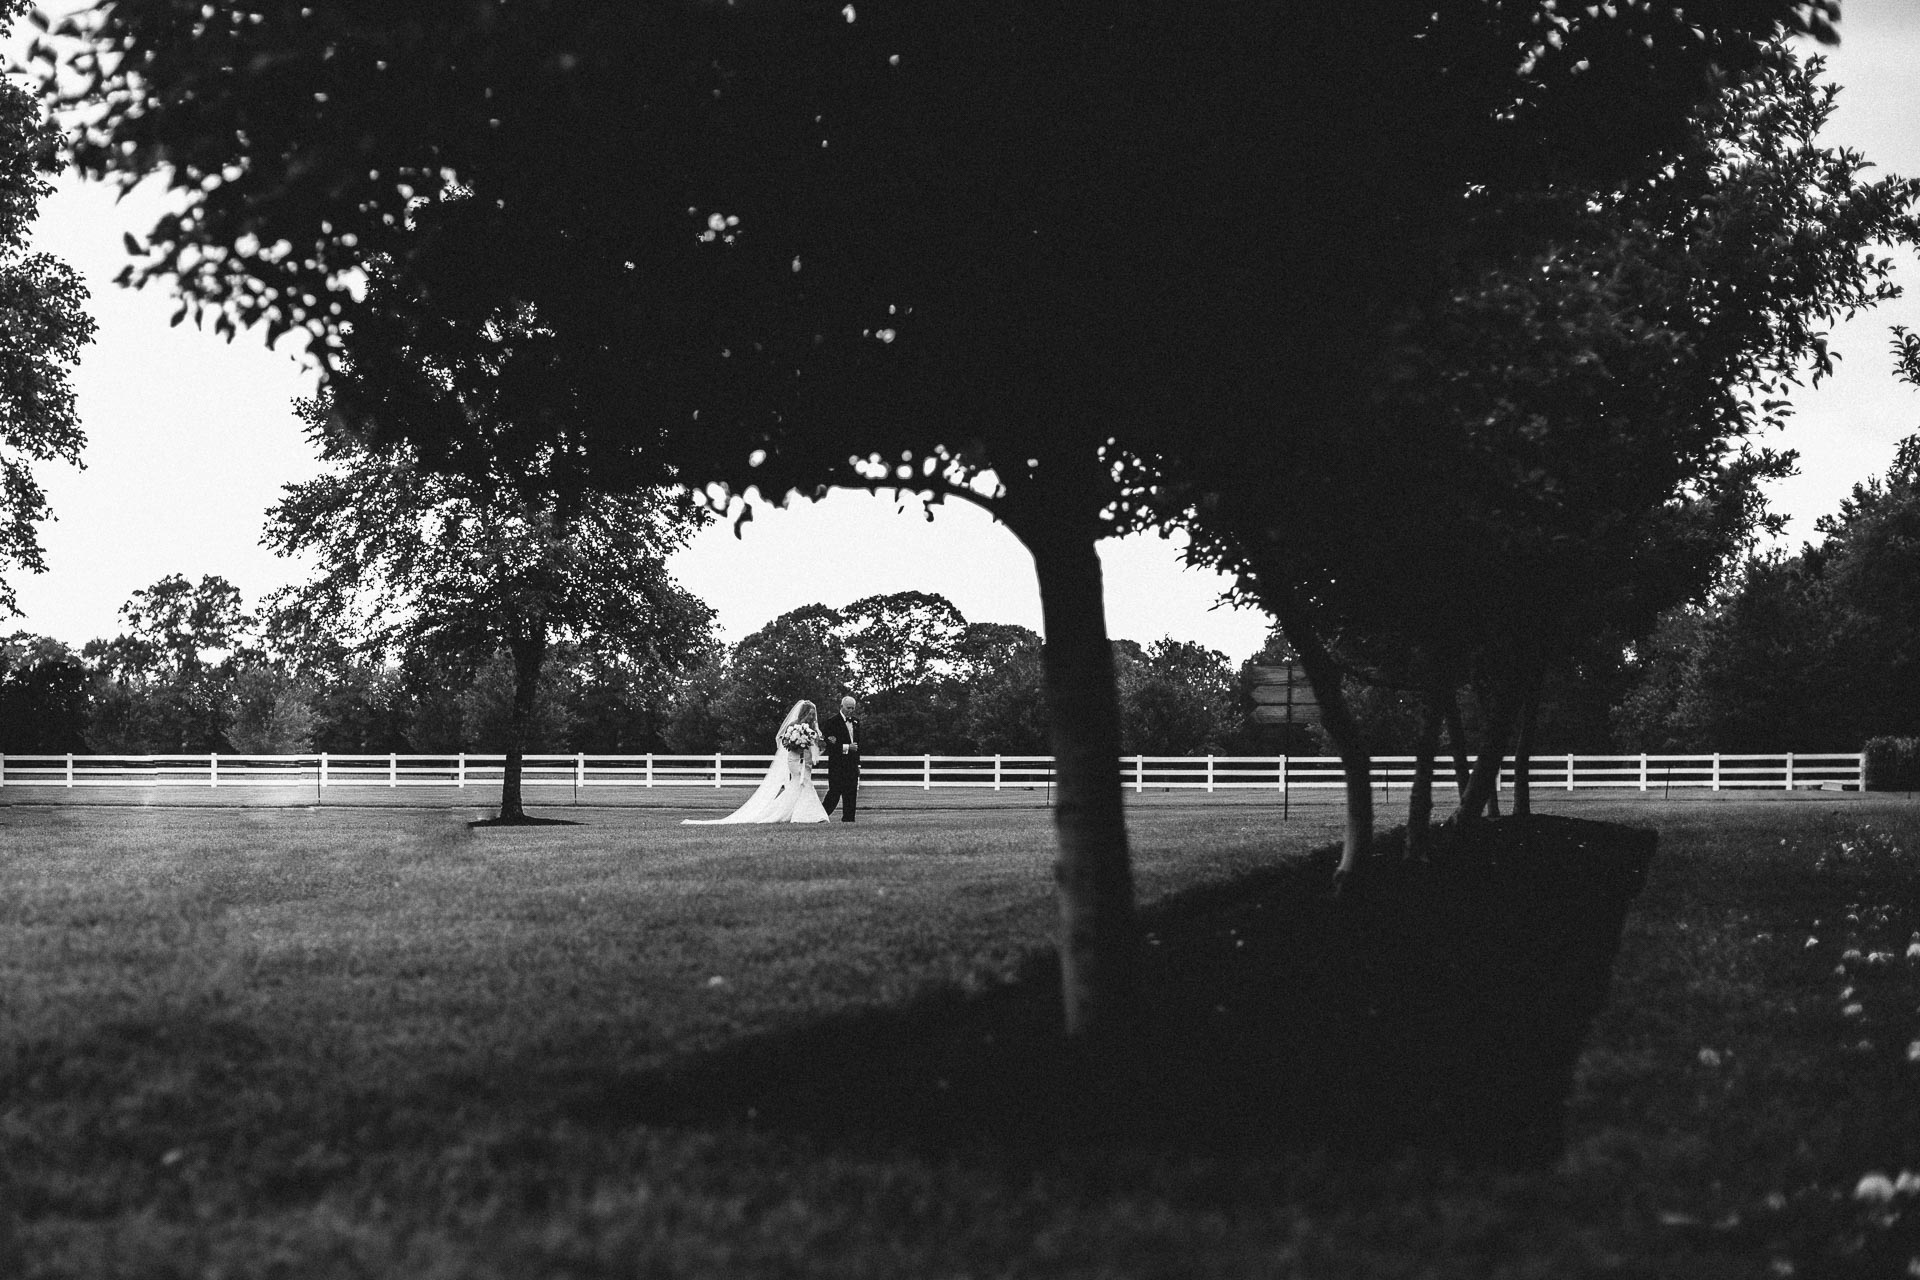 Shawna_Josh_Wedding_Easton_Maryland_JeanLaurentGaudy_064